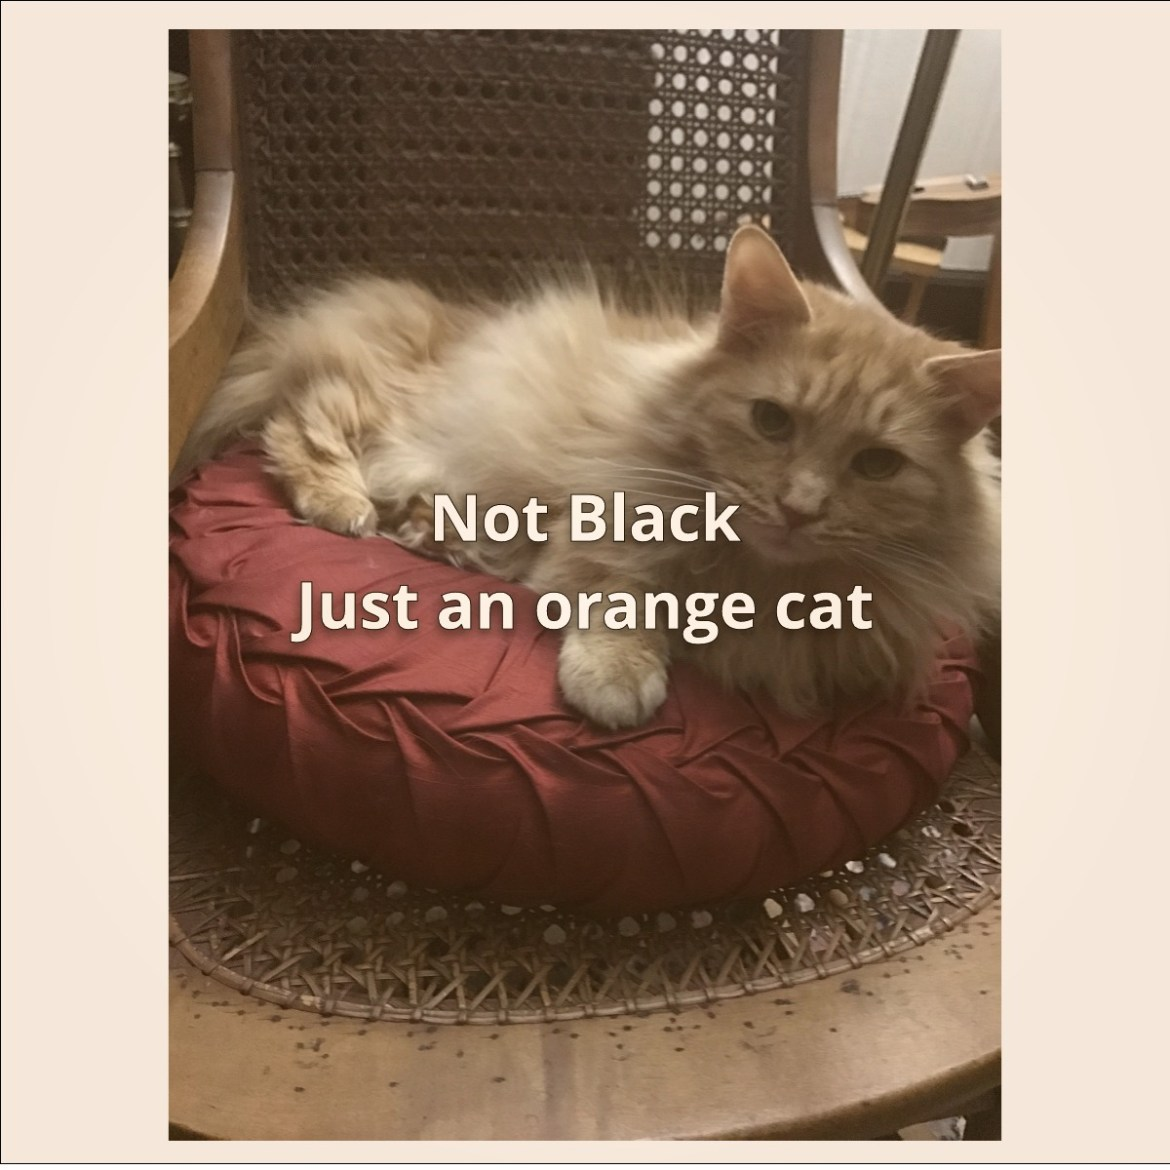 Another faker, this time just an orange cat